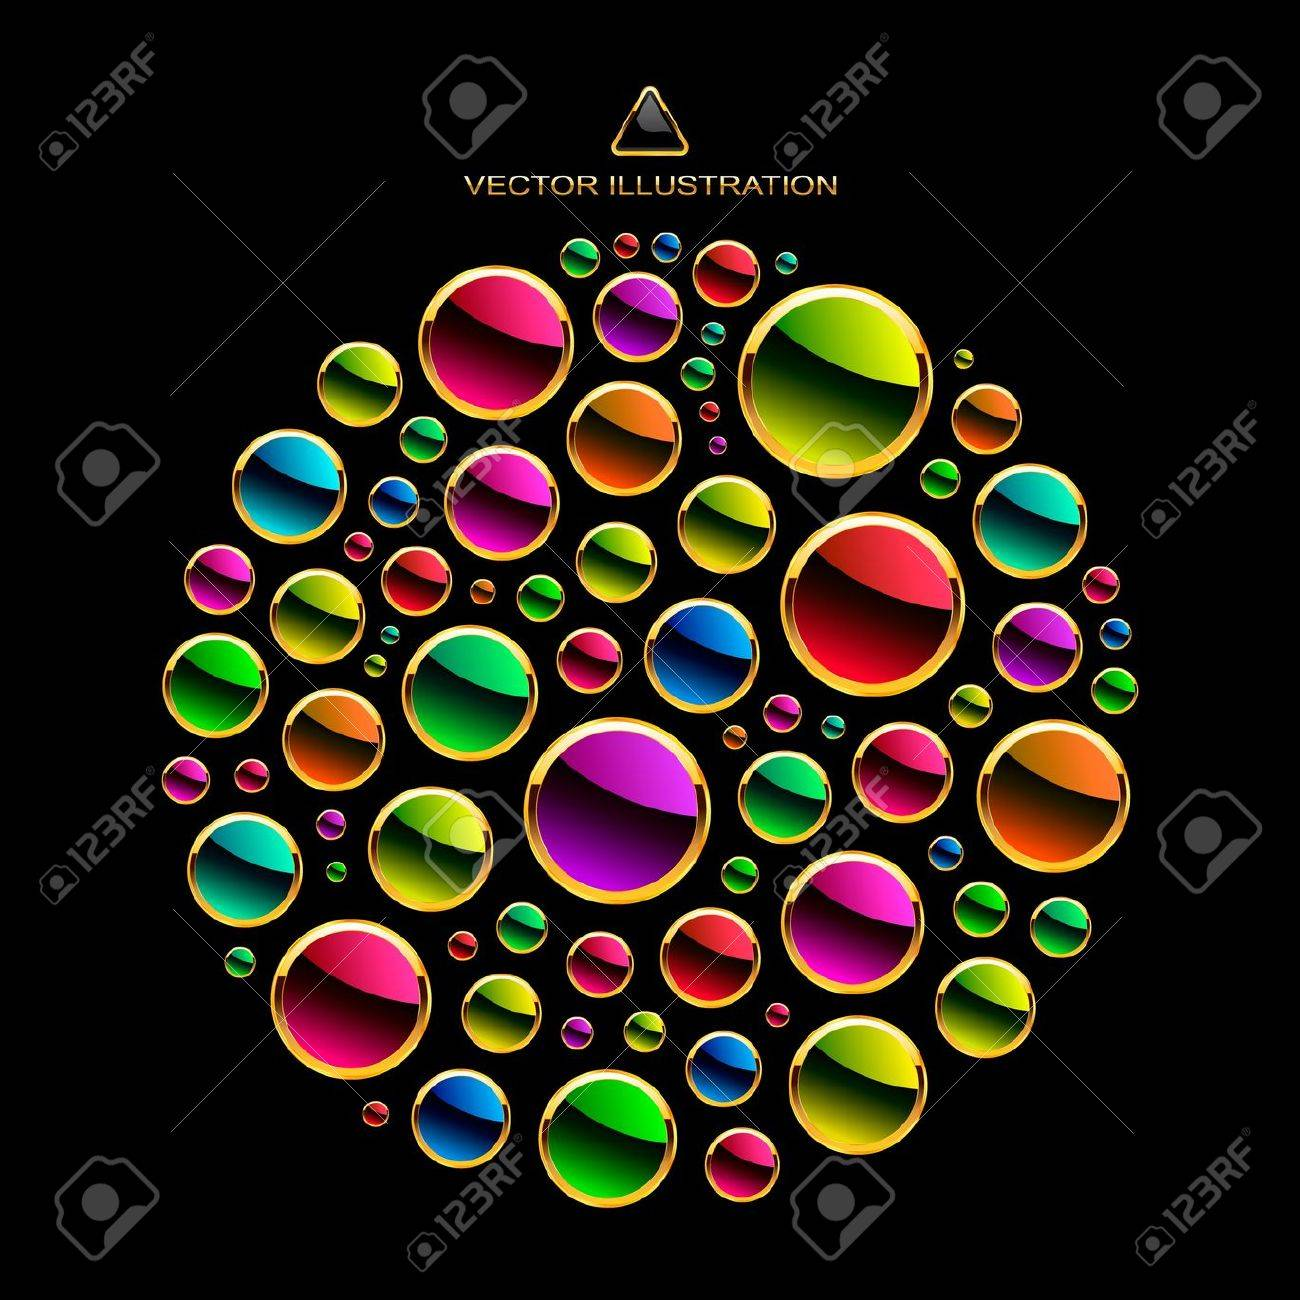 Colorful abstract illustration. Stock Vector - 11254437